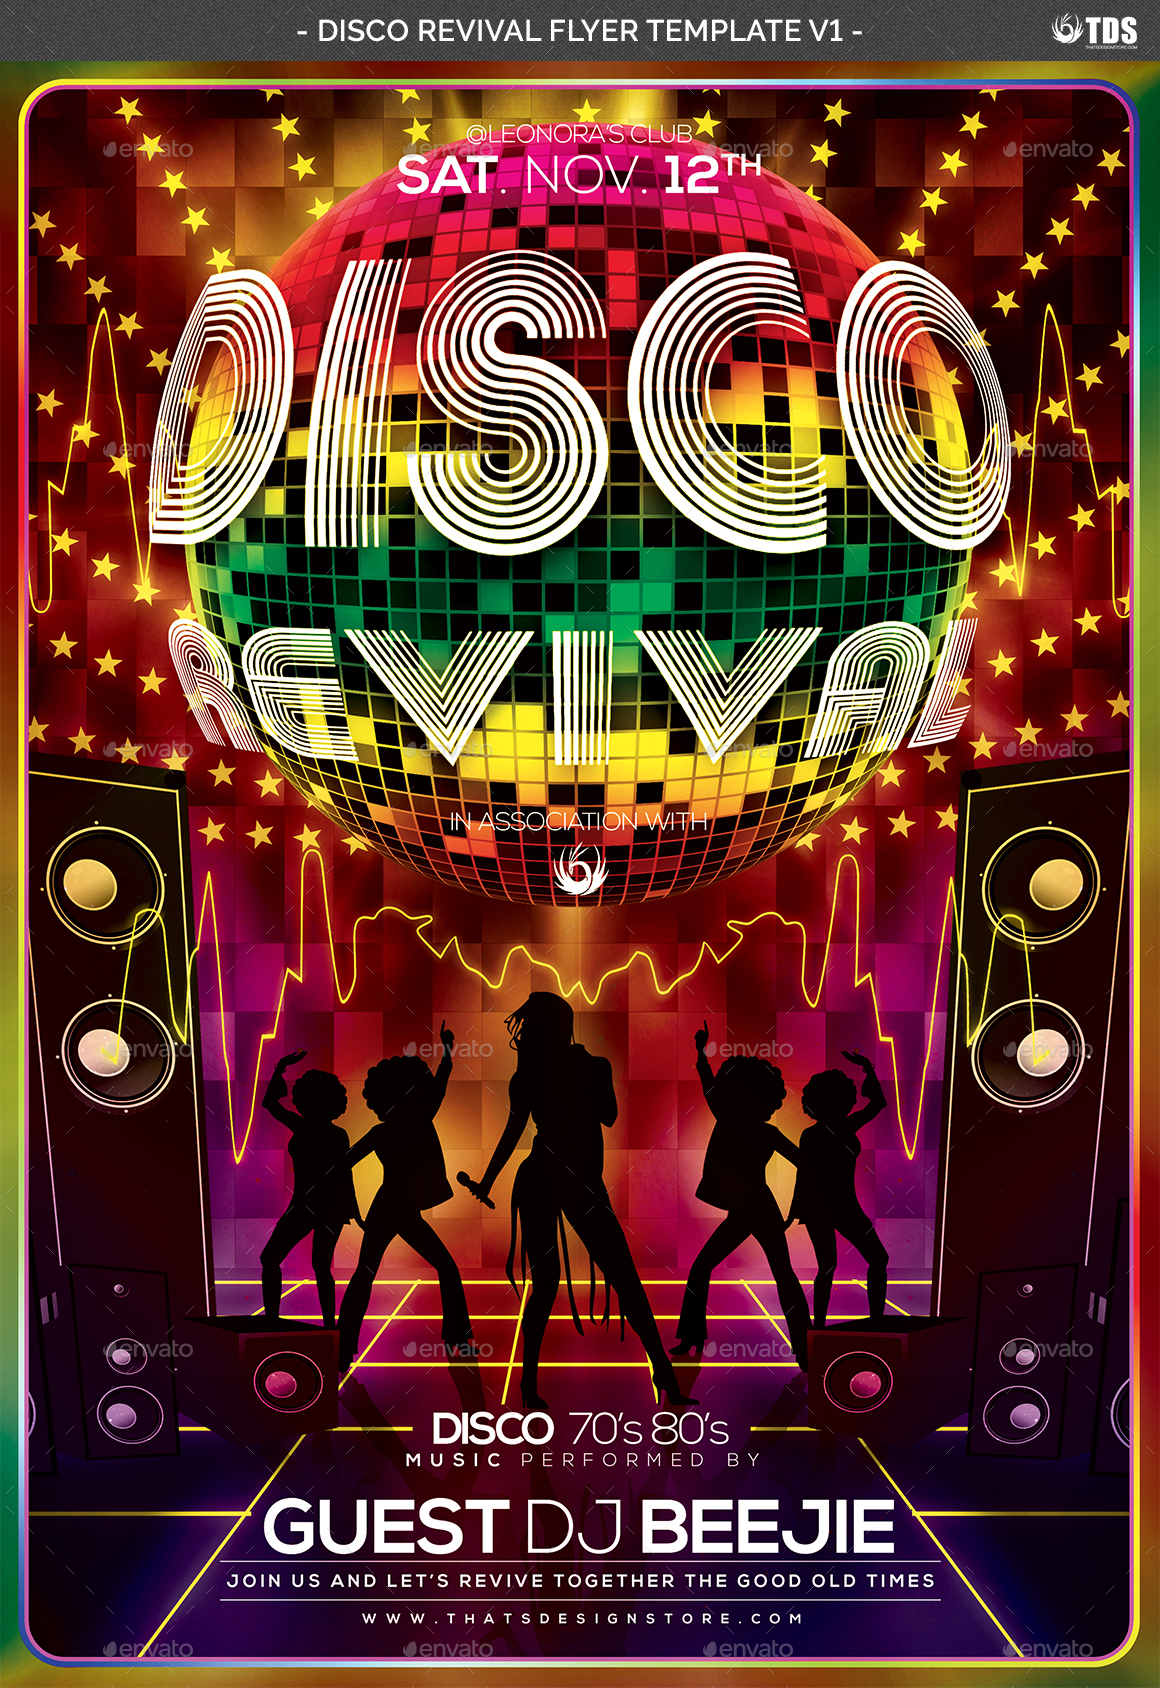 Disco Revival Flyer Template V1 by lou606 | GraphicRiver